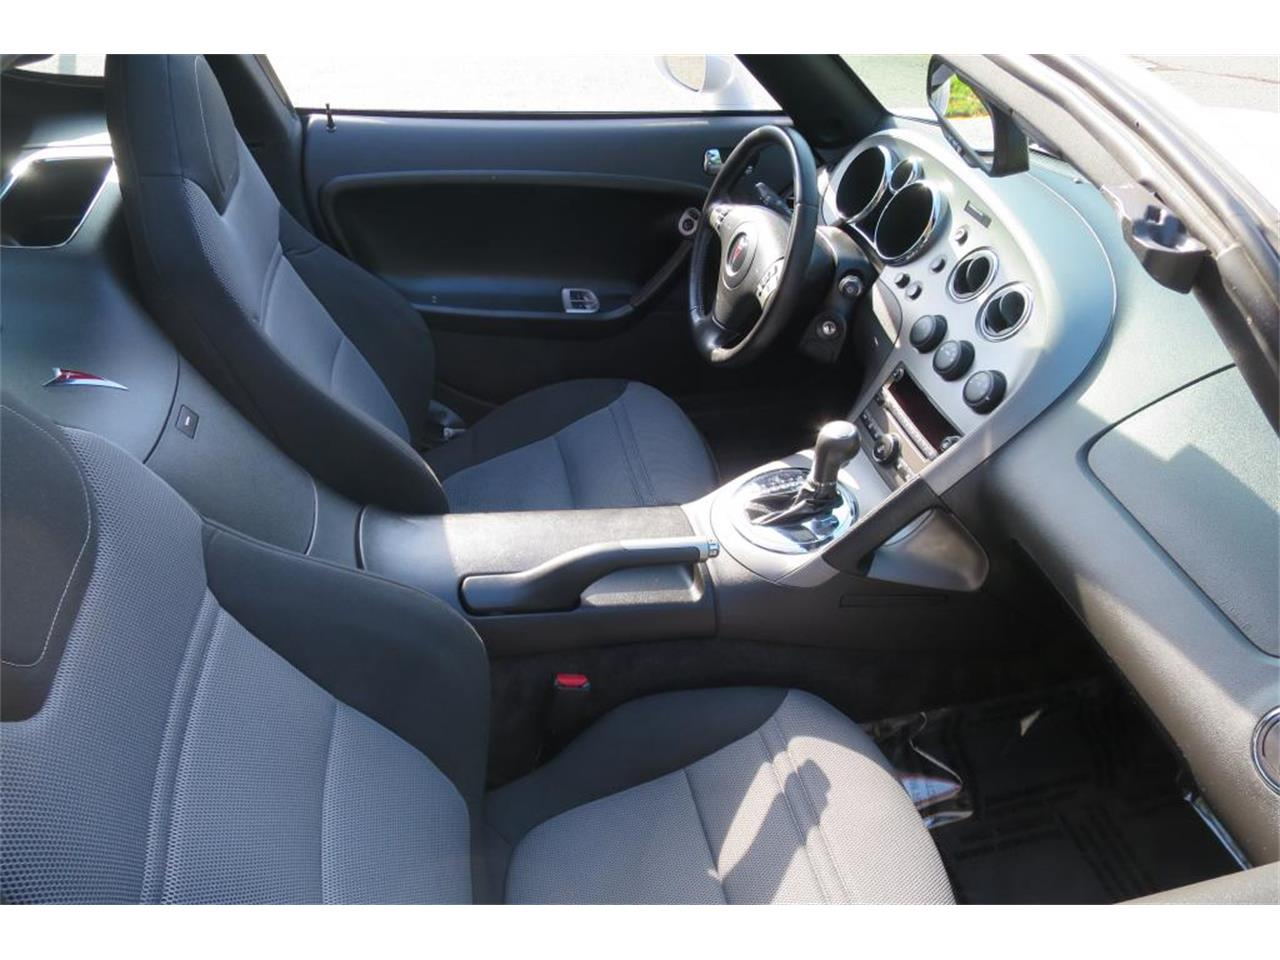 2009 Pontiac Solstice (CC-920126) for sale in Milford City, Connecticut